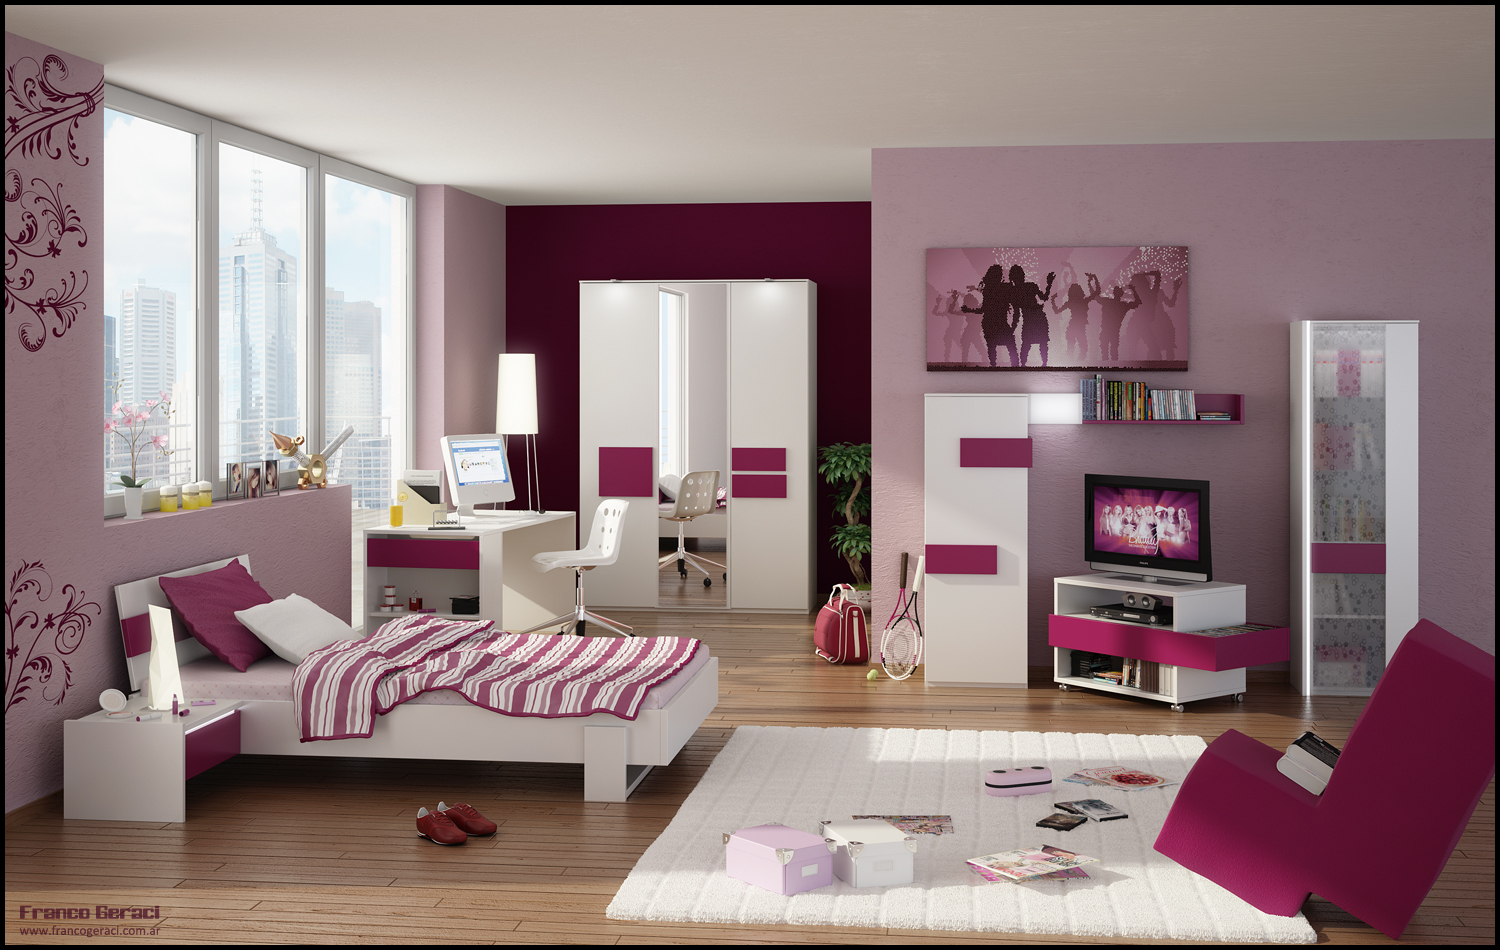 Brilliant Bedroom Room Designs 1500 x 950 · 847 kB · jpeg